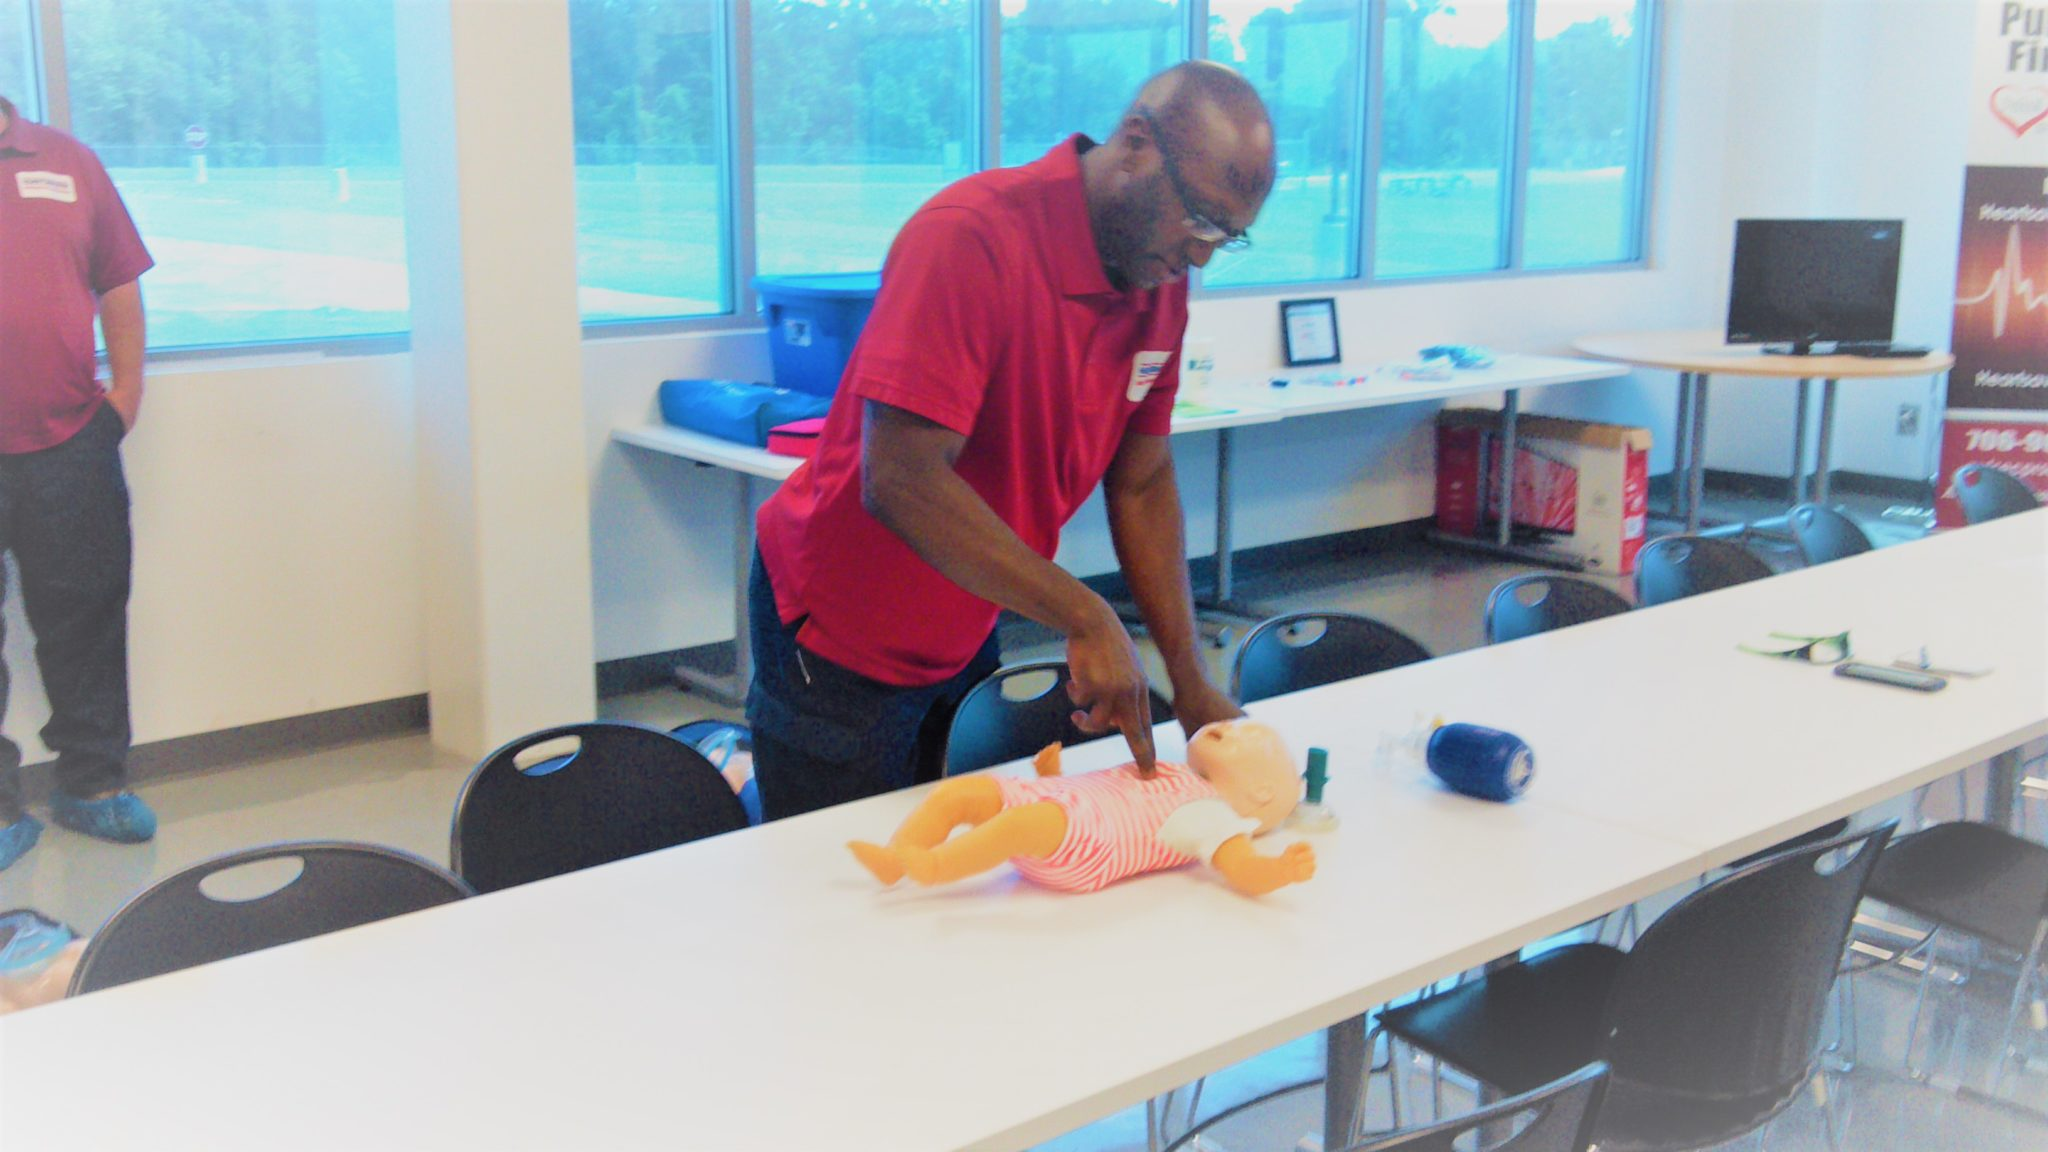 Corporate cpr most workplace cpr classes incorporate aed automated external defibrillator training along with cpr together these two certifications pack a powerful xflitez Image collections